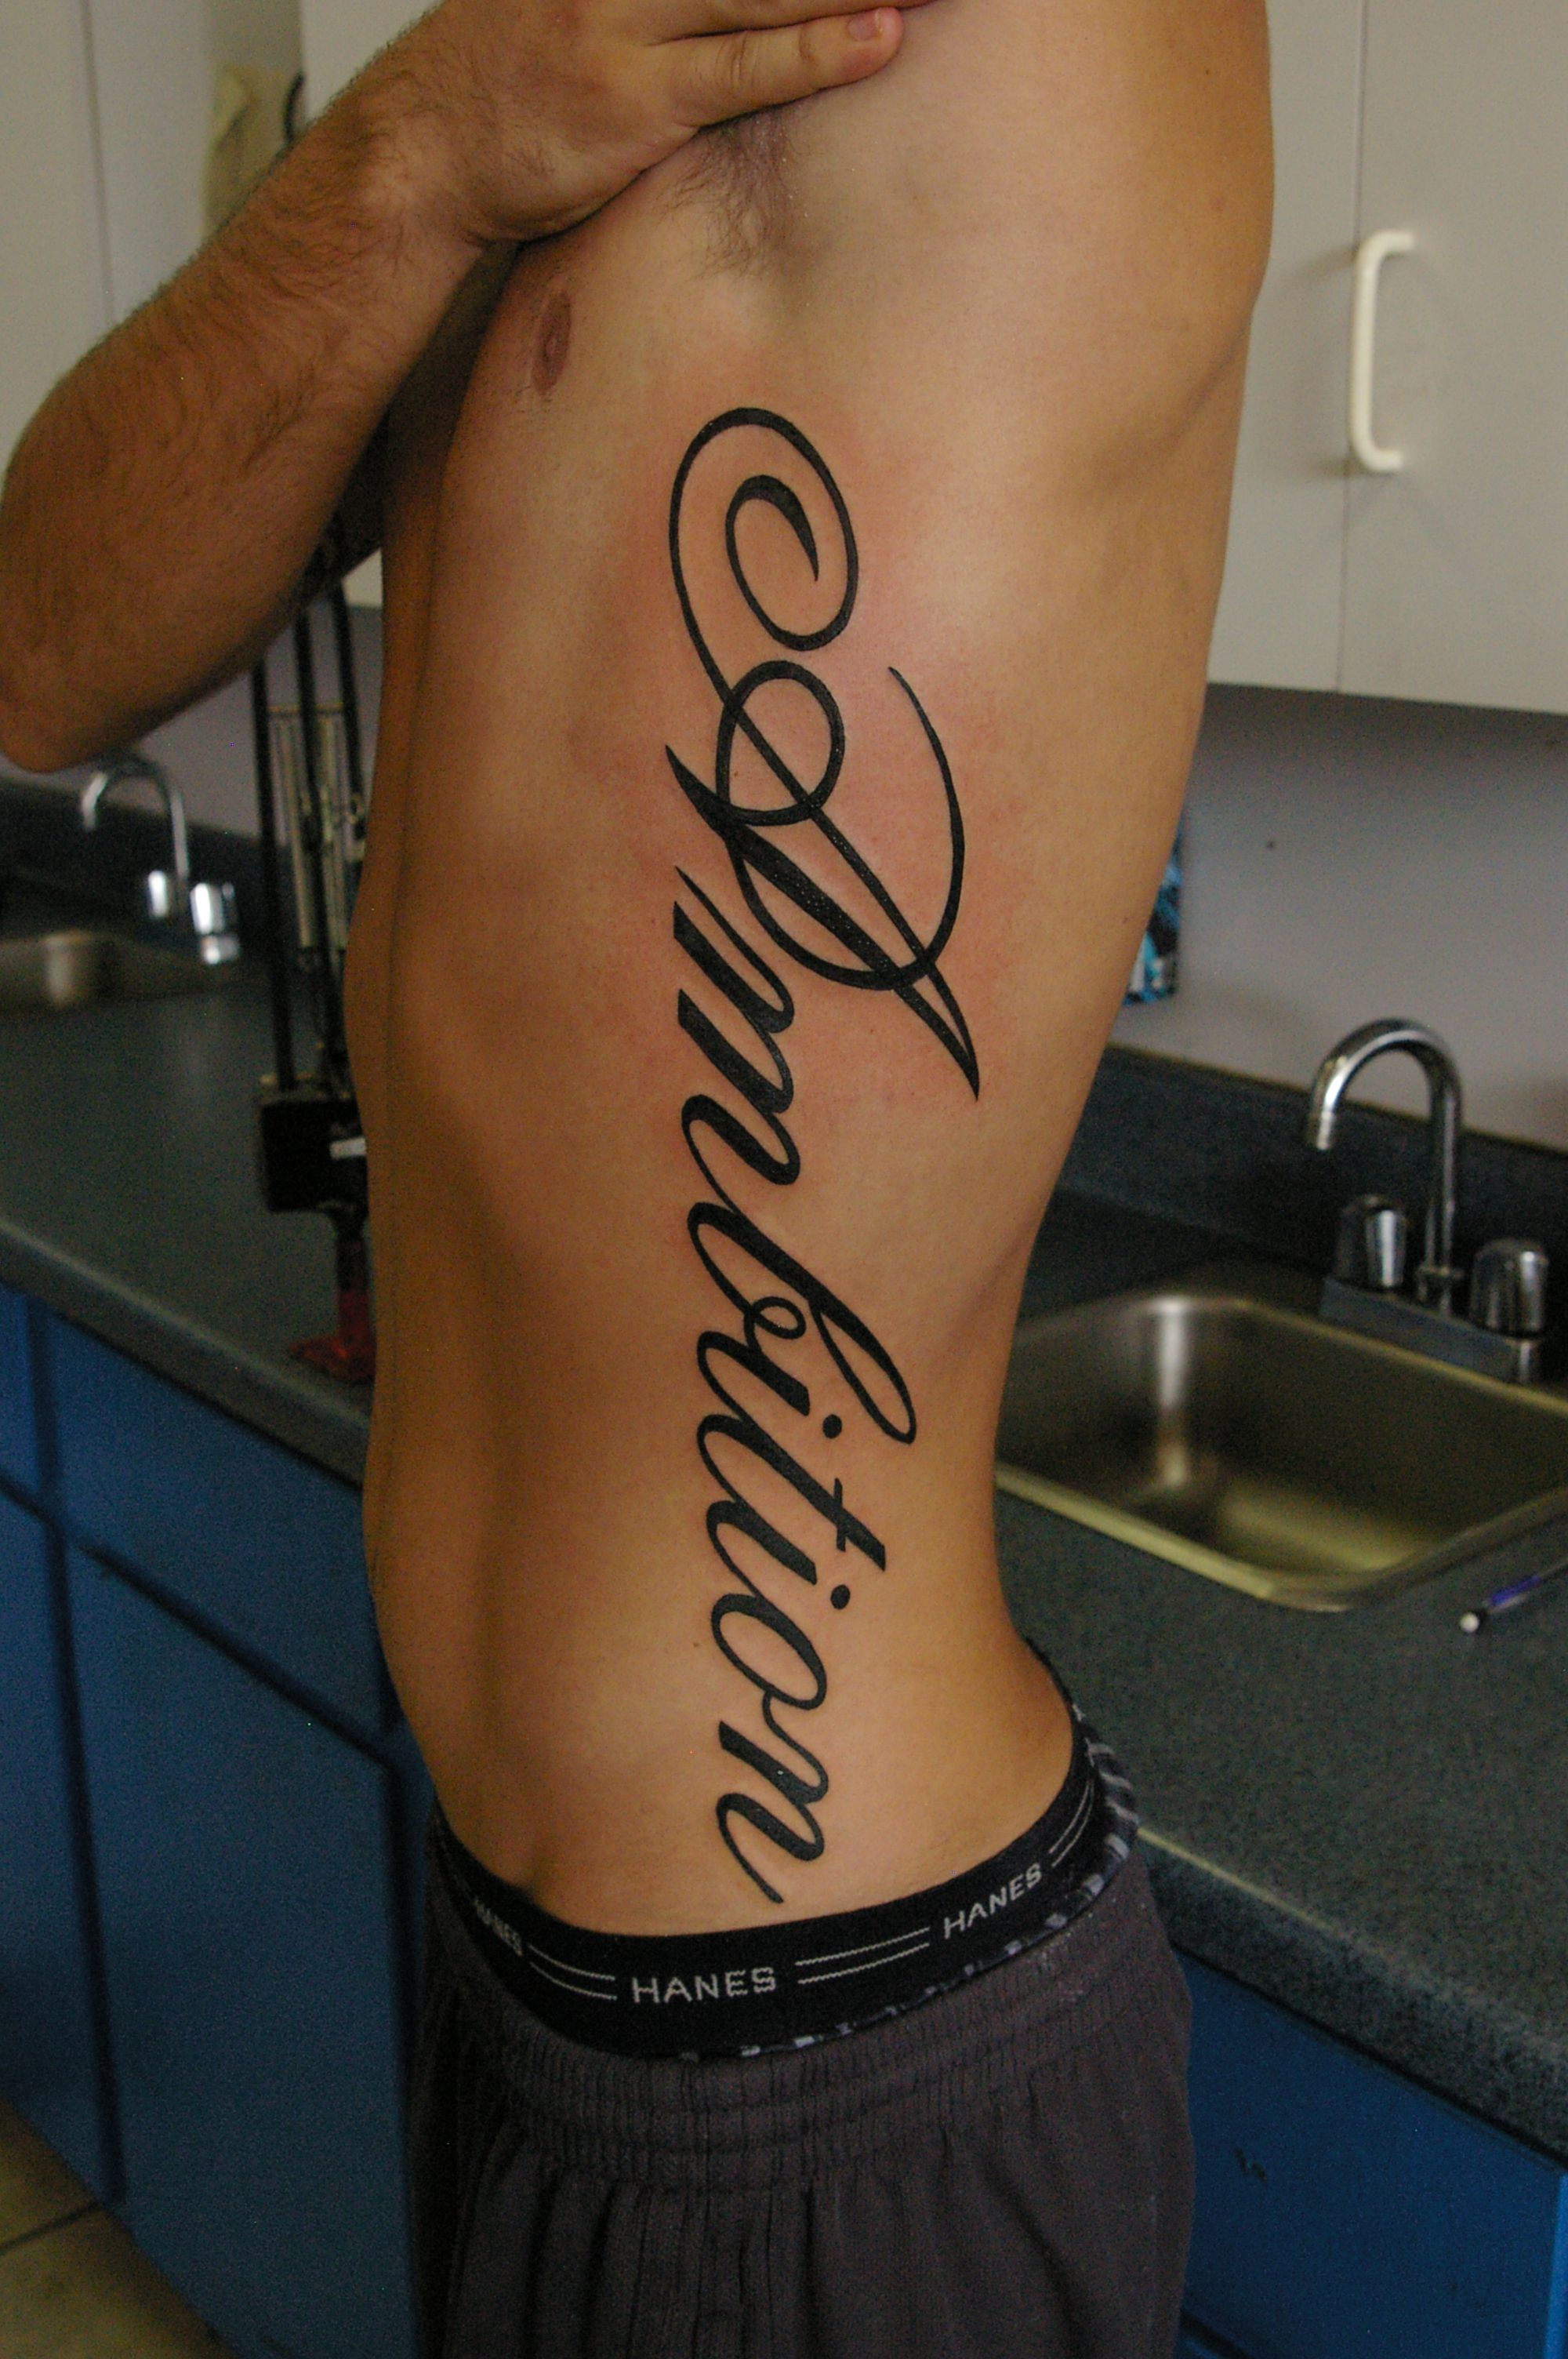 Wale Ambition Tattoo On Hand More Celebrity Tattoo Designs Fresh 2016 Ambition Tattoo Hand Tattoos Free Tattoo Designs